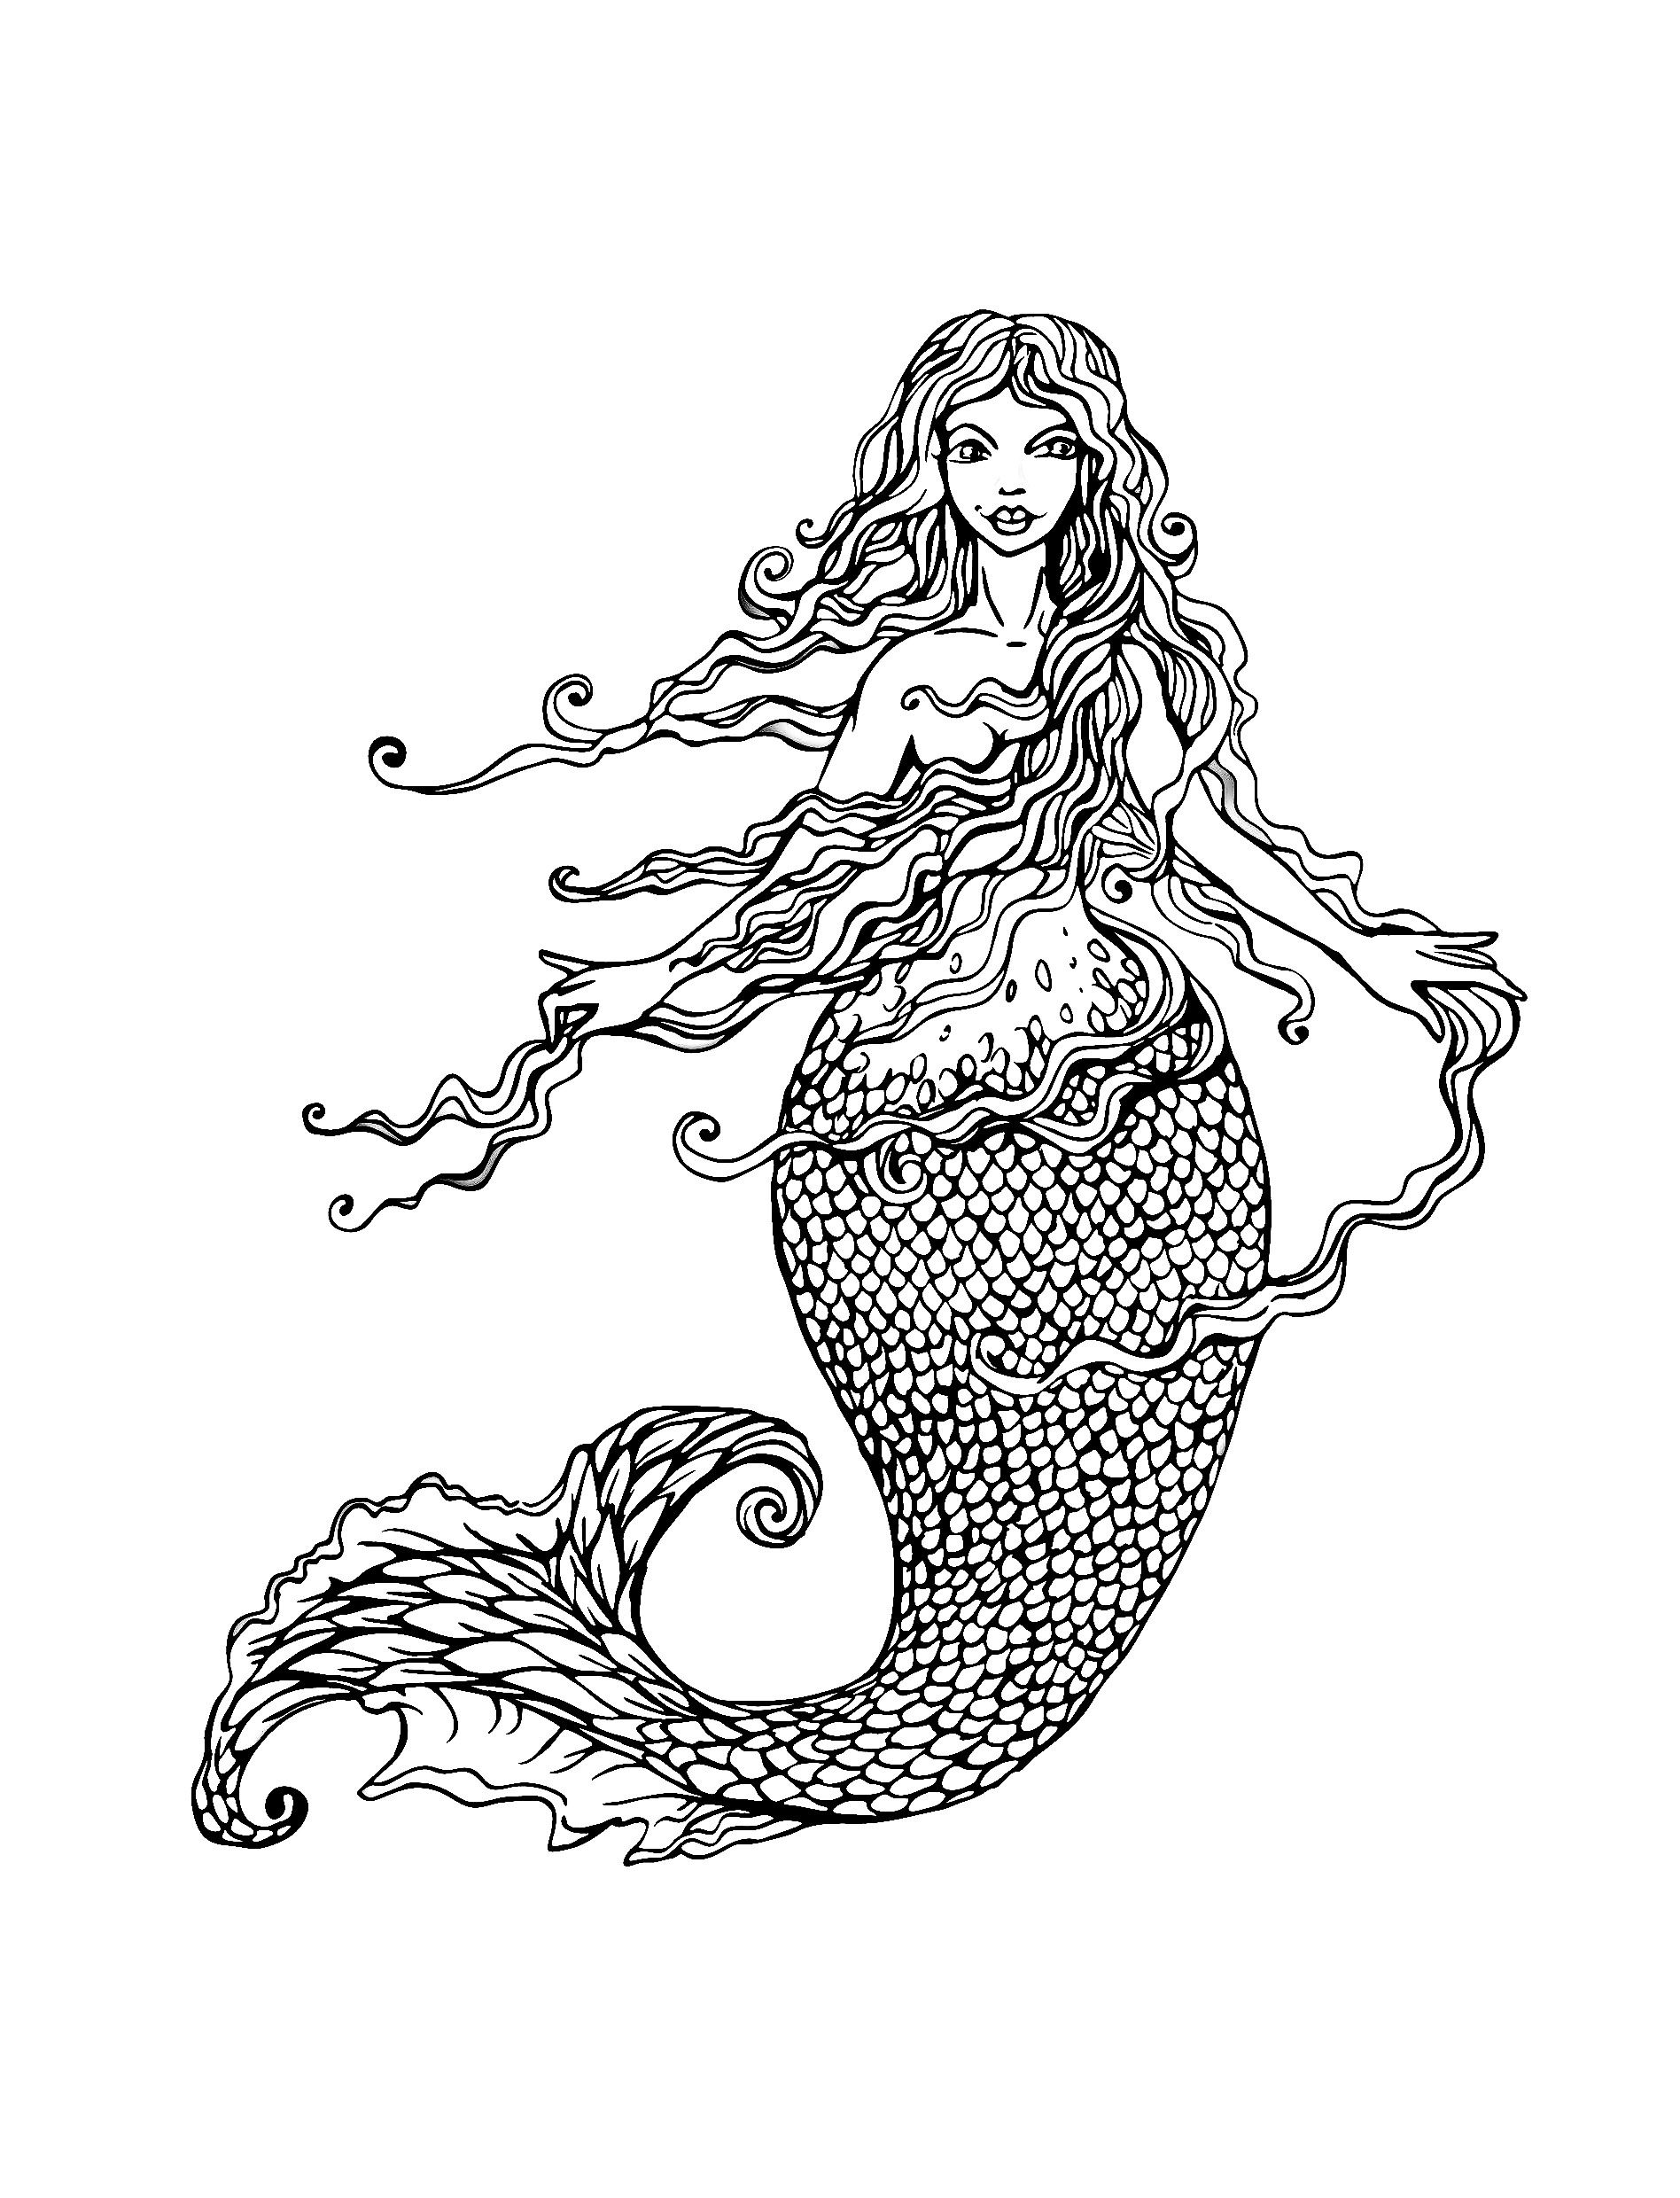 Mermaid Coloring Pages For Adults Best Coloring Pages For Kids In 2020 Mermaid Coloring Book Mermaid Coloring Mermaid Coloring Pages